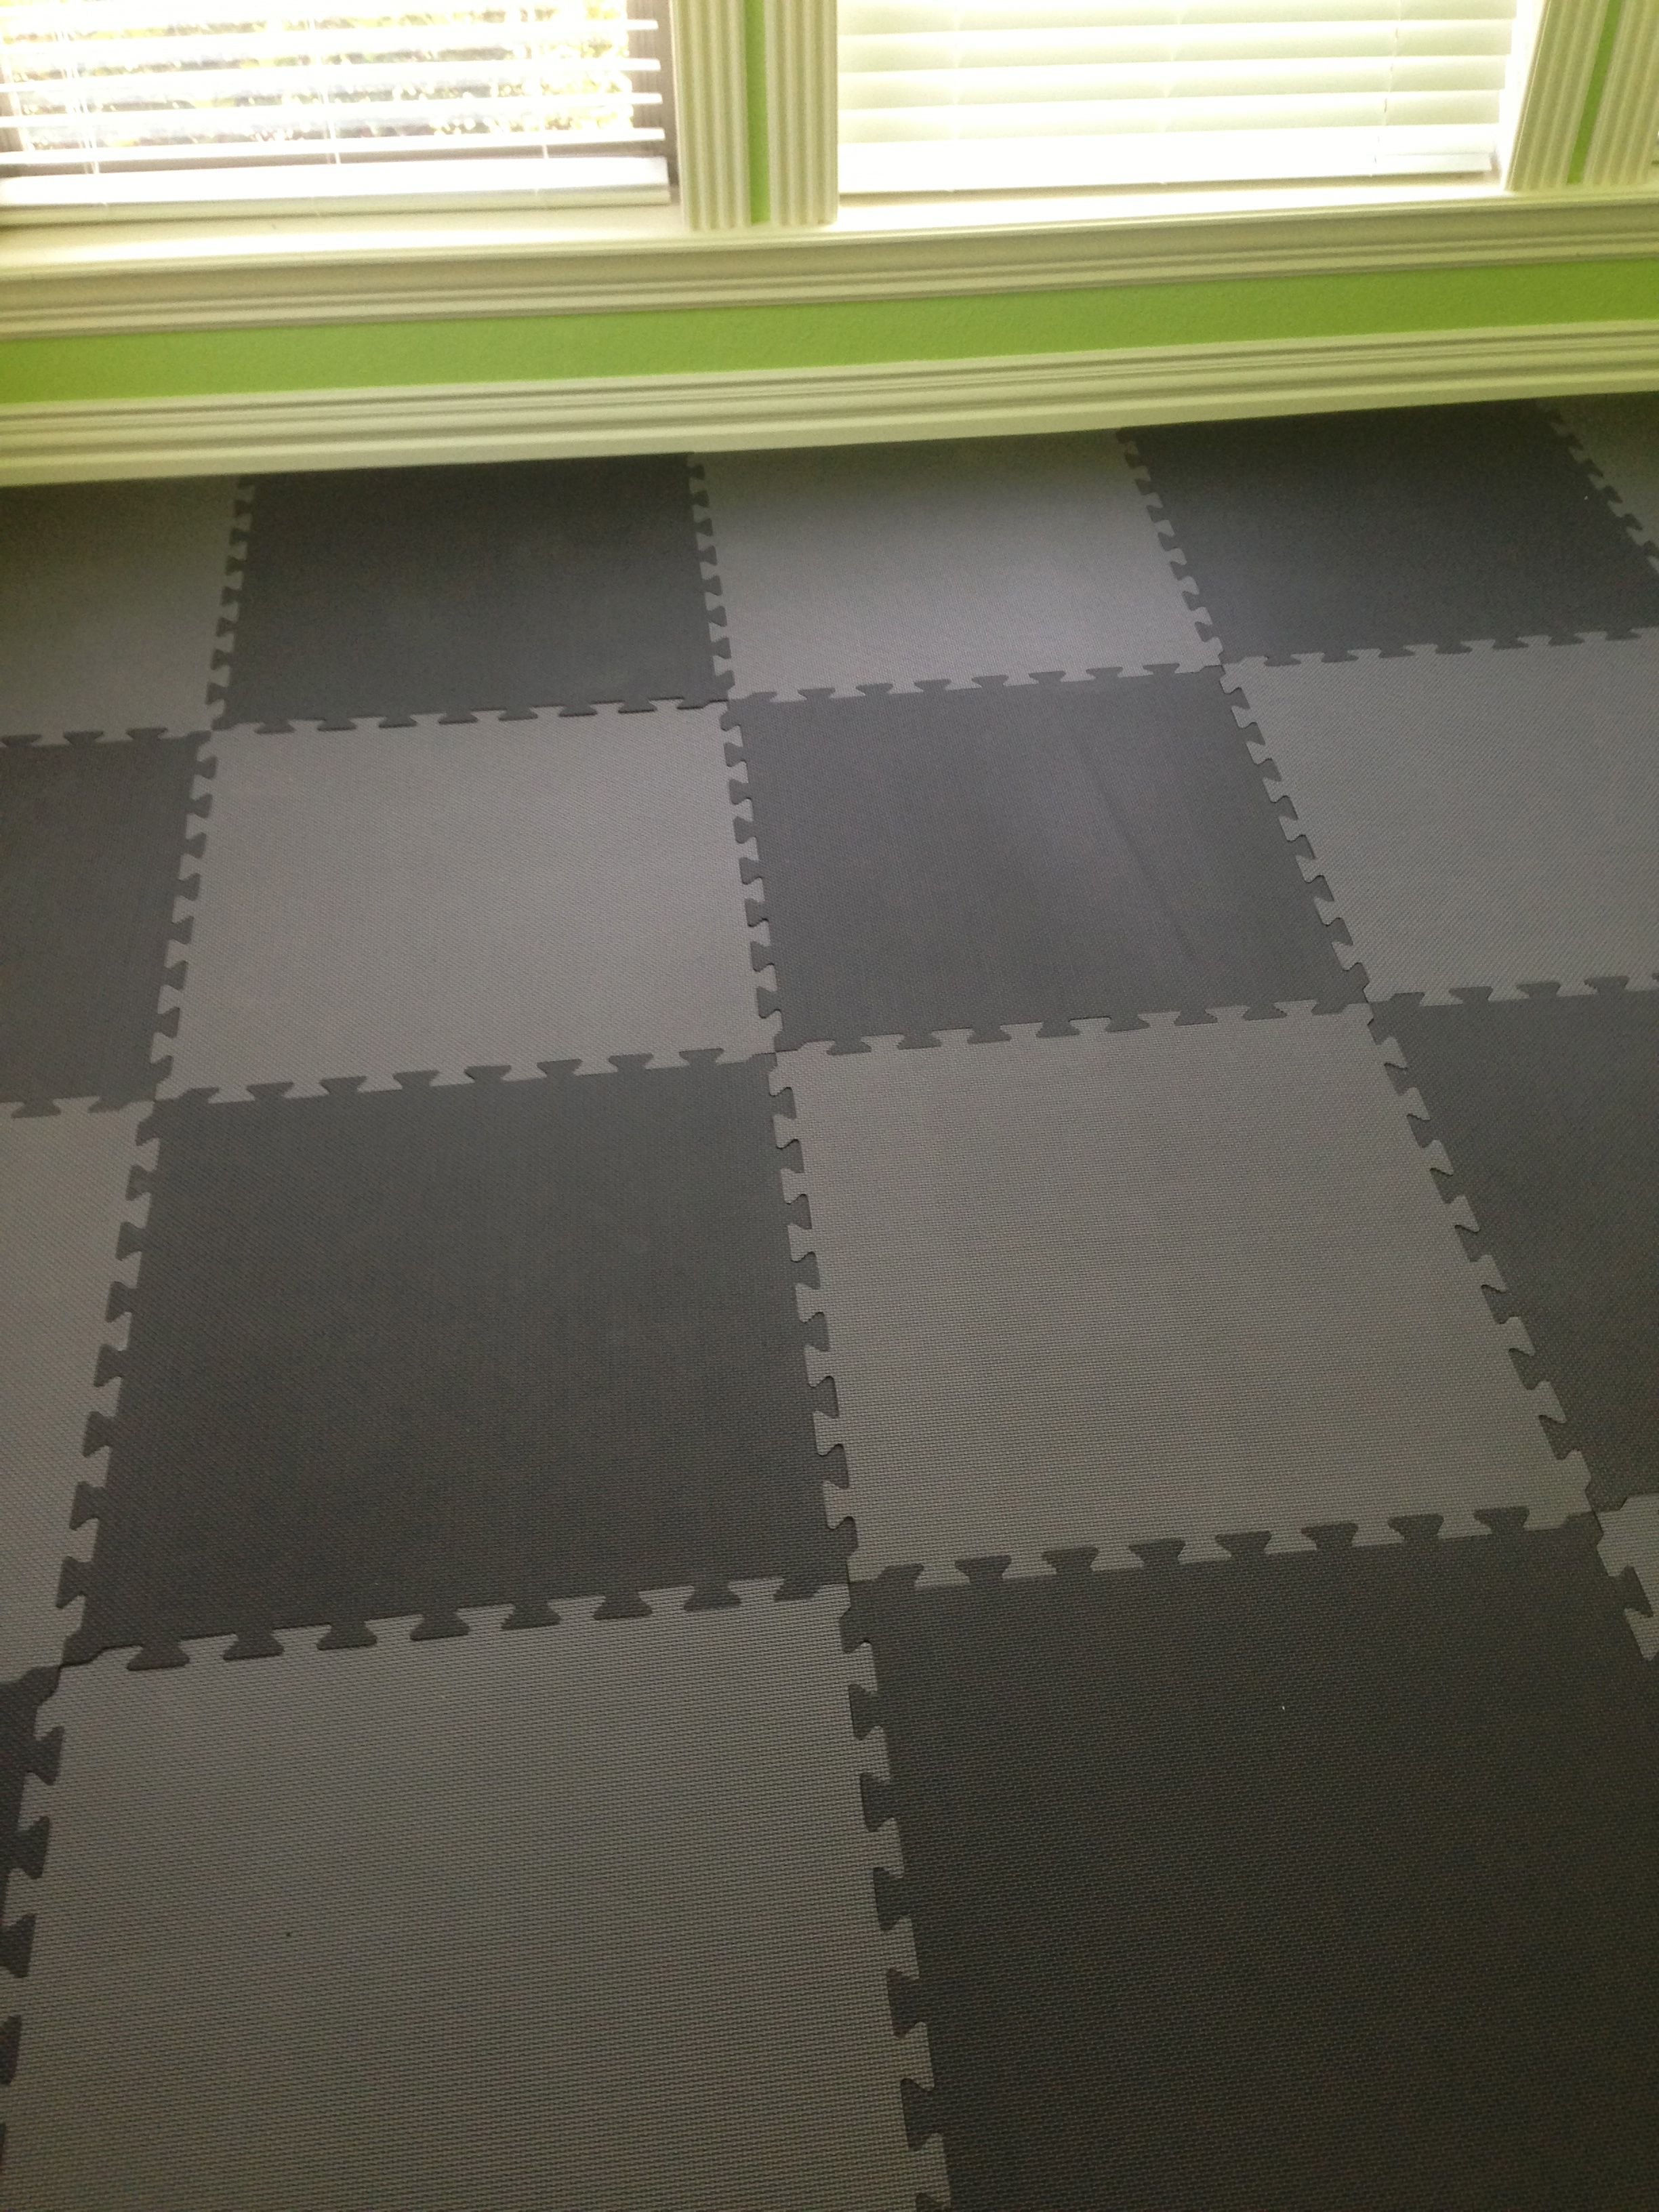 Exercise Room Flooring Soft Tiles Black And Charcoal Grey